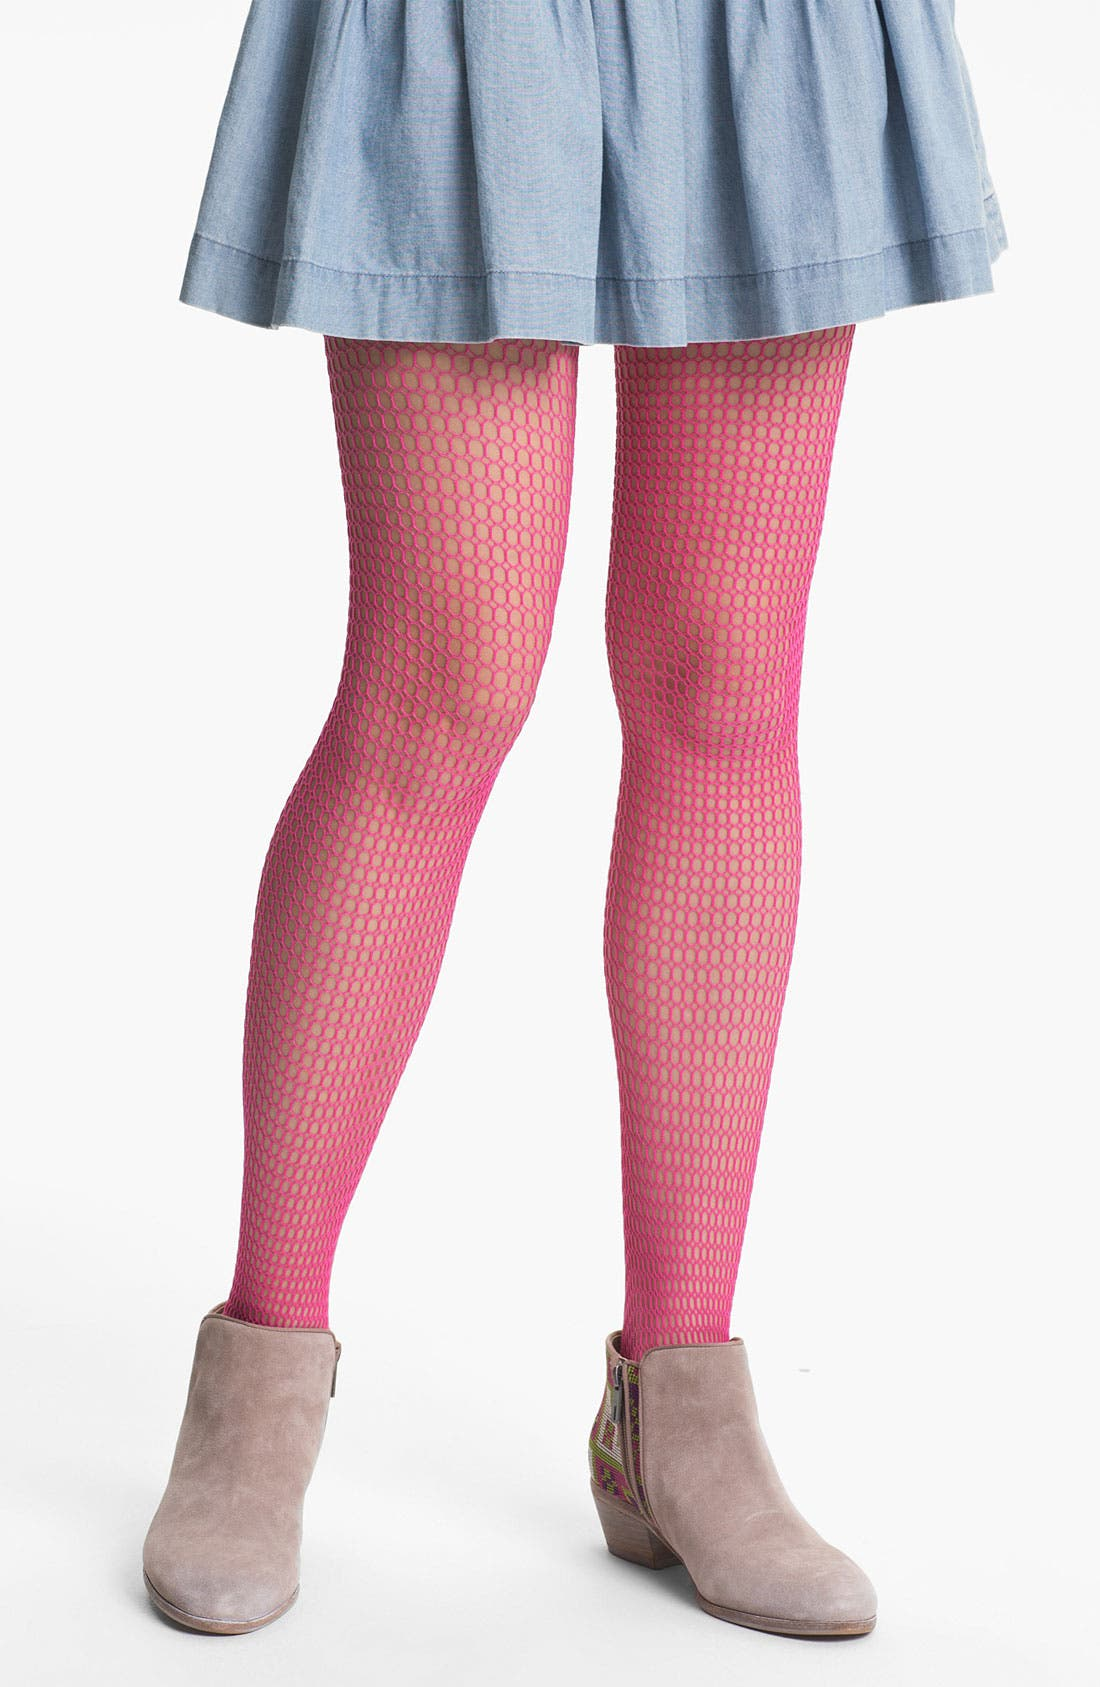 Main Image - Hue 'Box Net' Tights